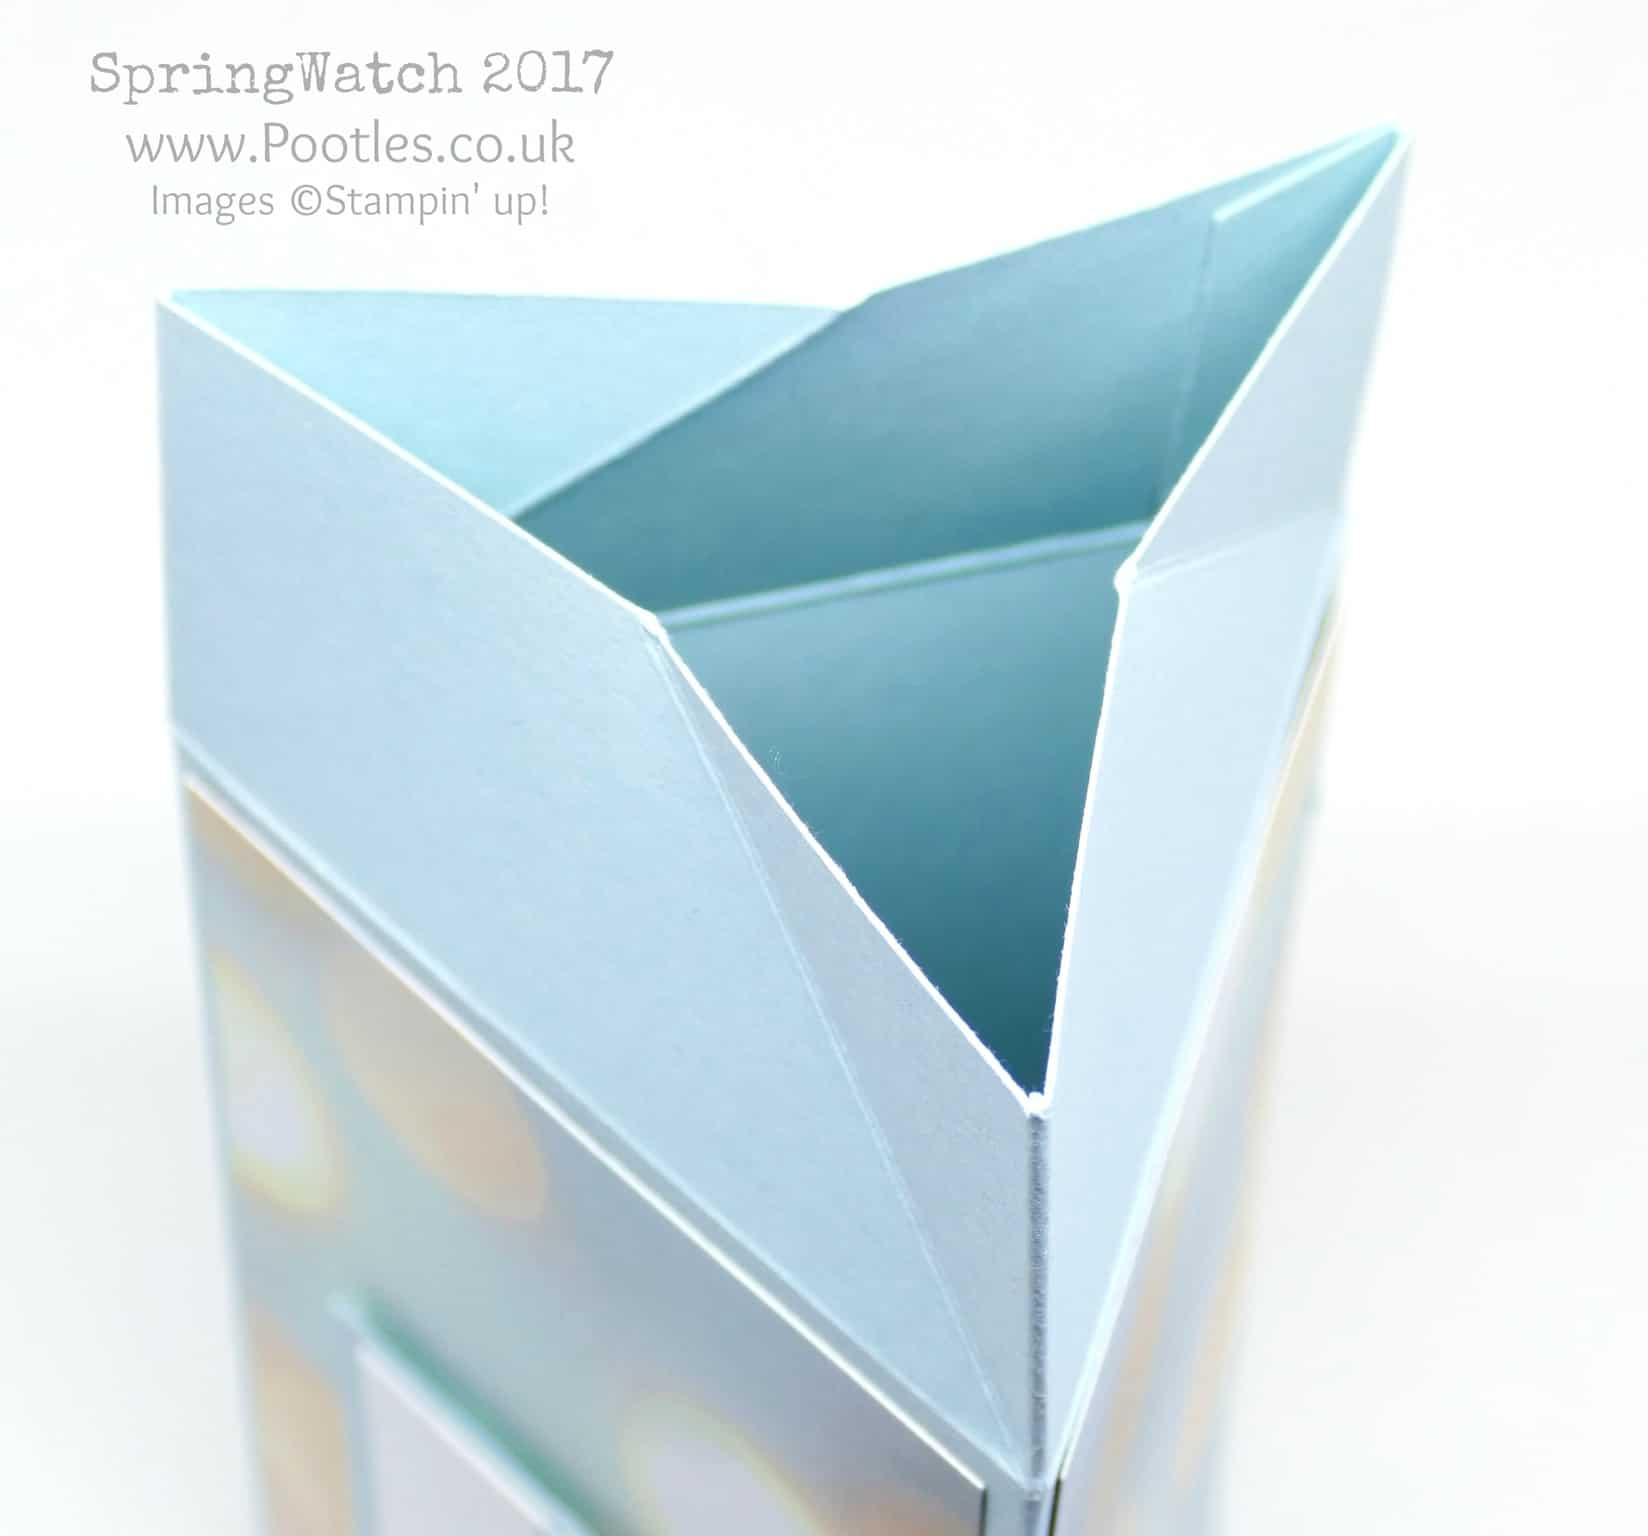 Pootles SpringWatch 2017 Twist & Close Triangle Box